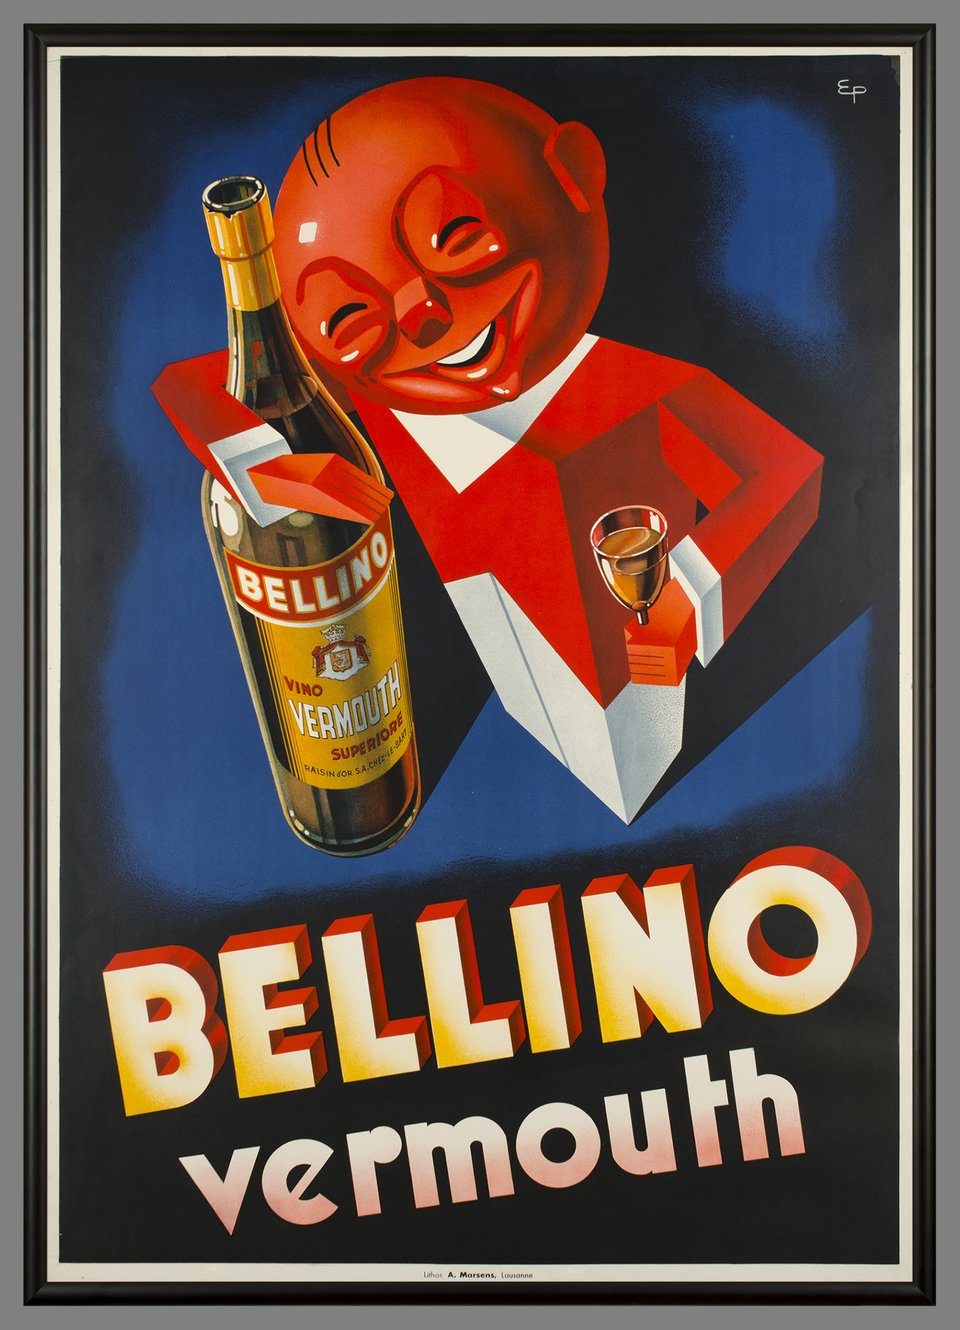 Bellino Vermouth – Affiche ancienne – Eugene PATKEVITCH – 1943